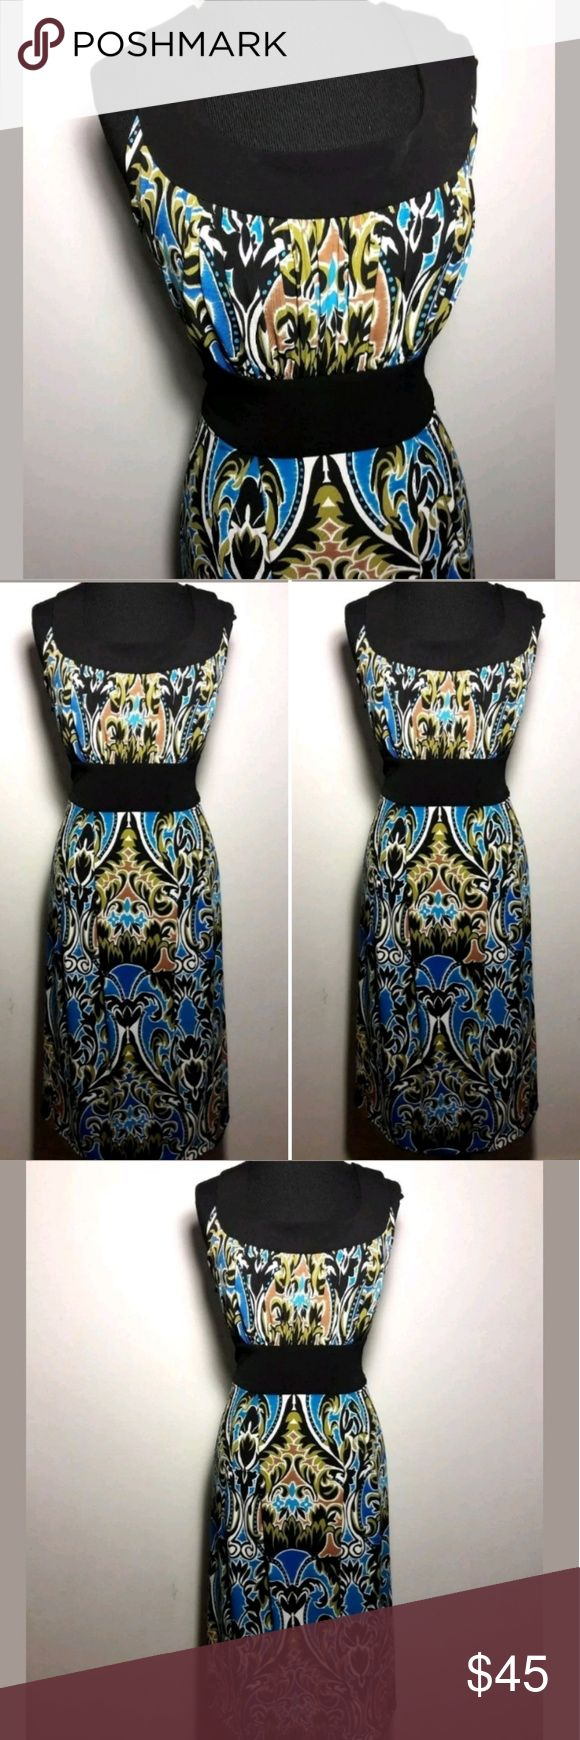 Donna Ricco Floral Dress Donna Ricco Women's Dress 16W Empire Waist Pleated Multi-Color Floral Sleeveless  Pre-owned in Excellent condition.  Please be sure it view all images before purchasing.  Thank you for Looking & Sharing Happy Poshing😄💗 Donna Ricco Dresses